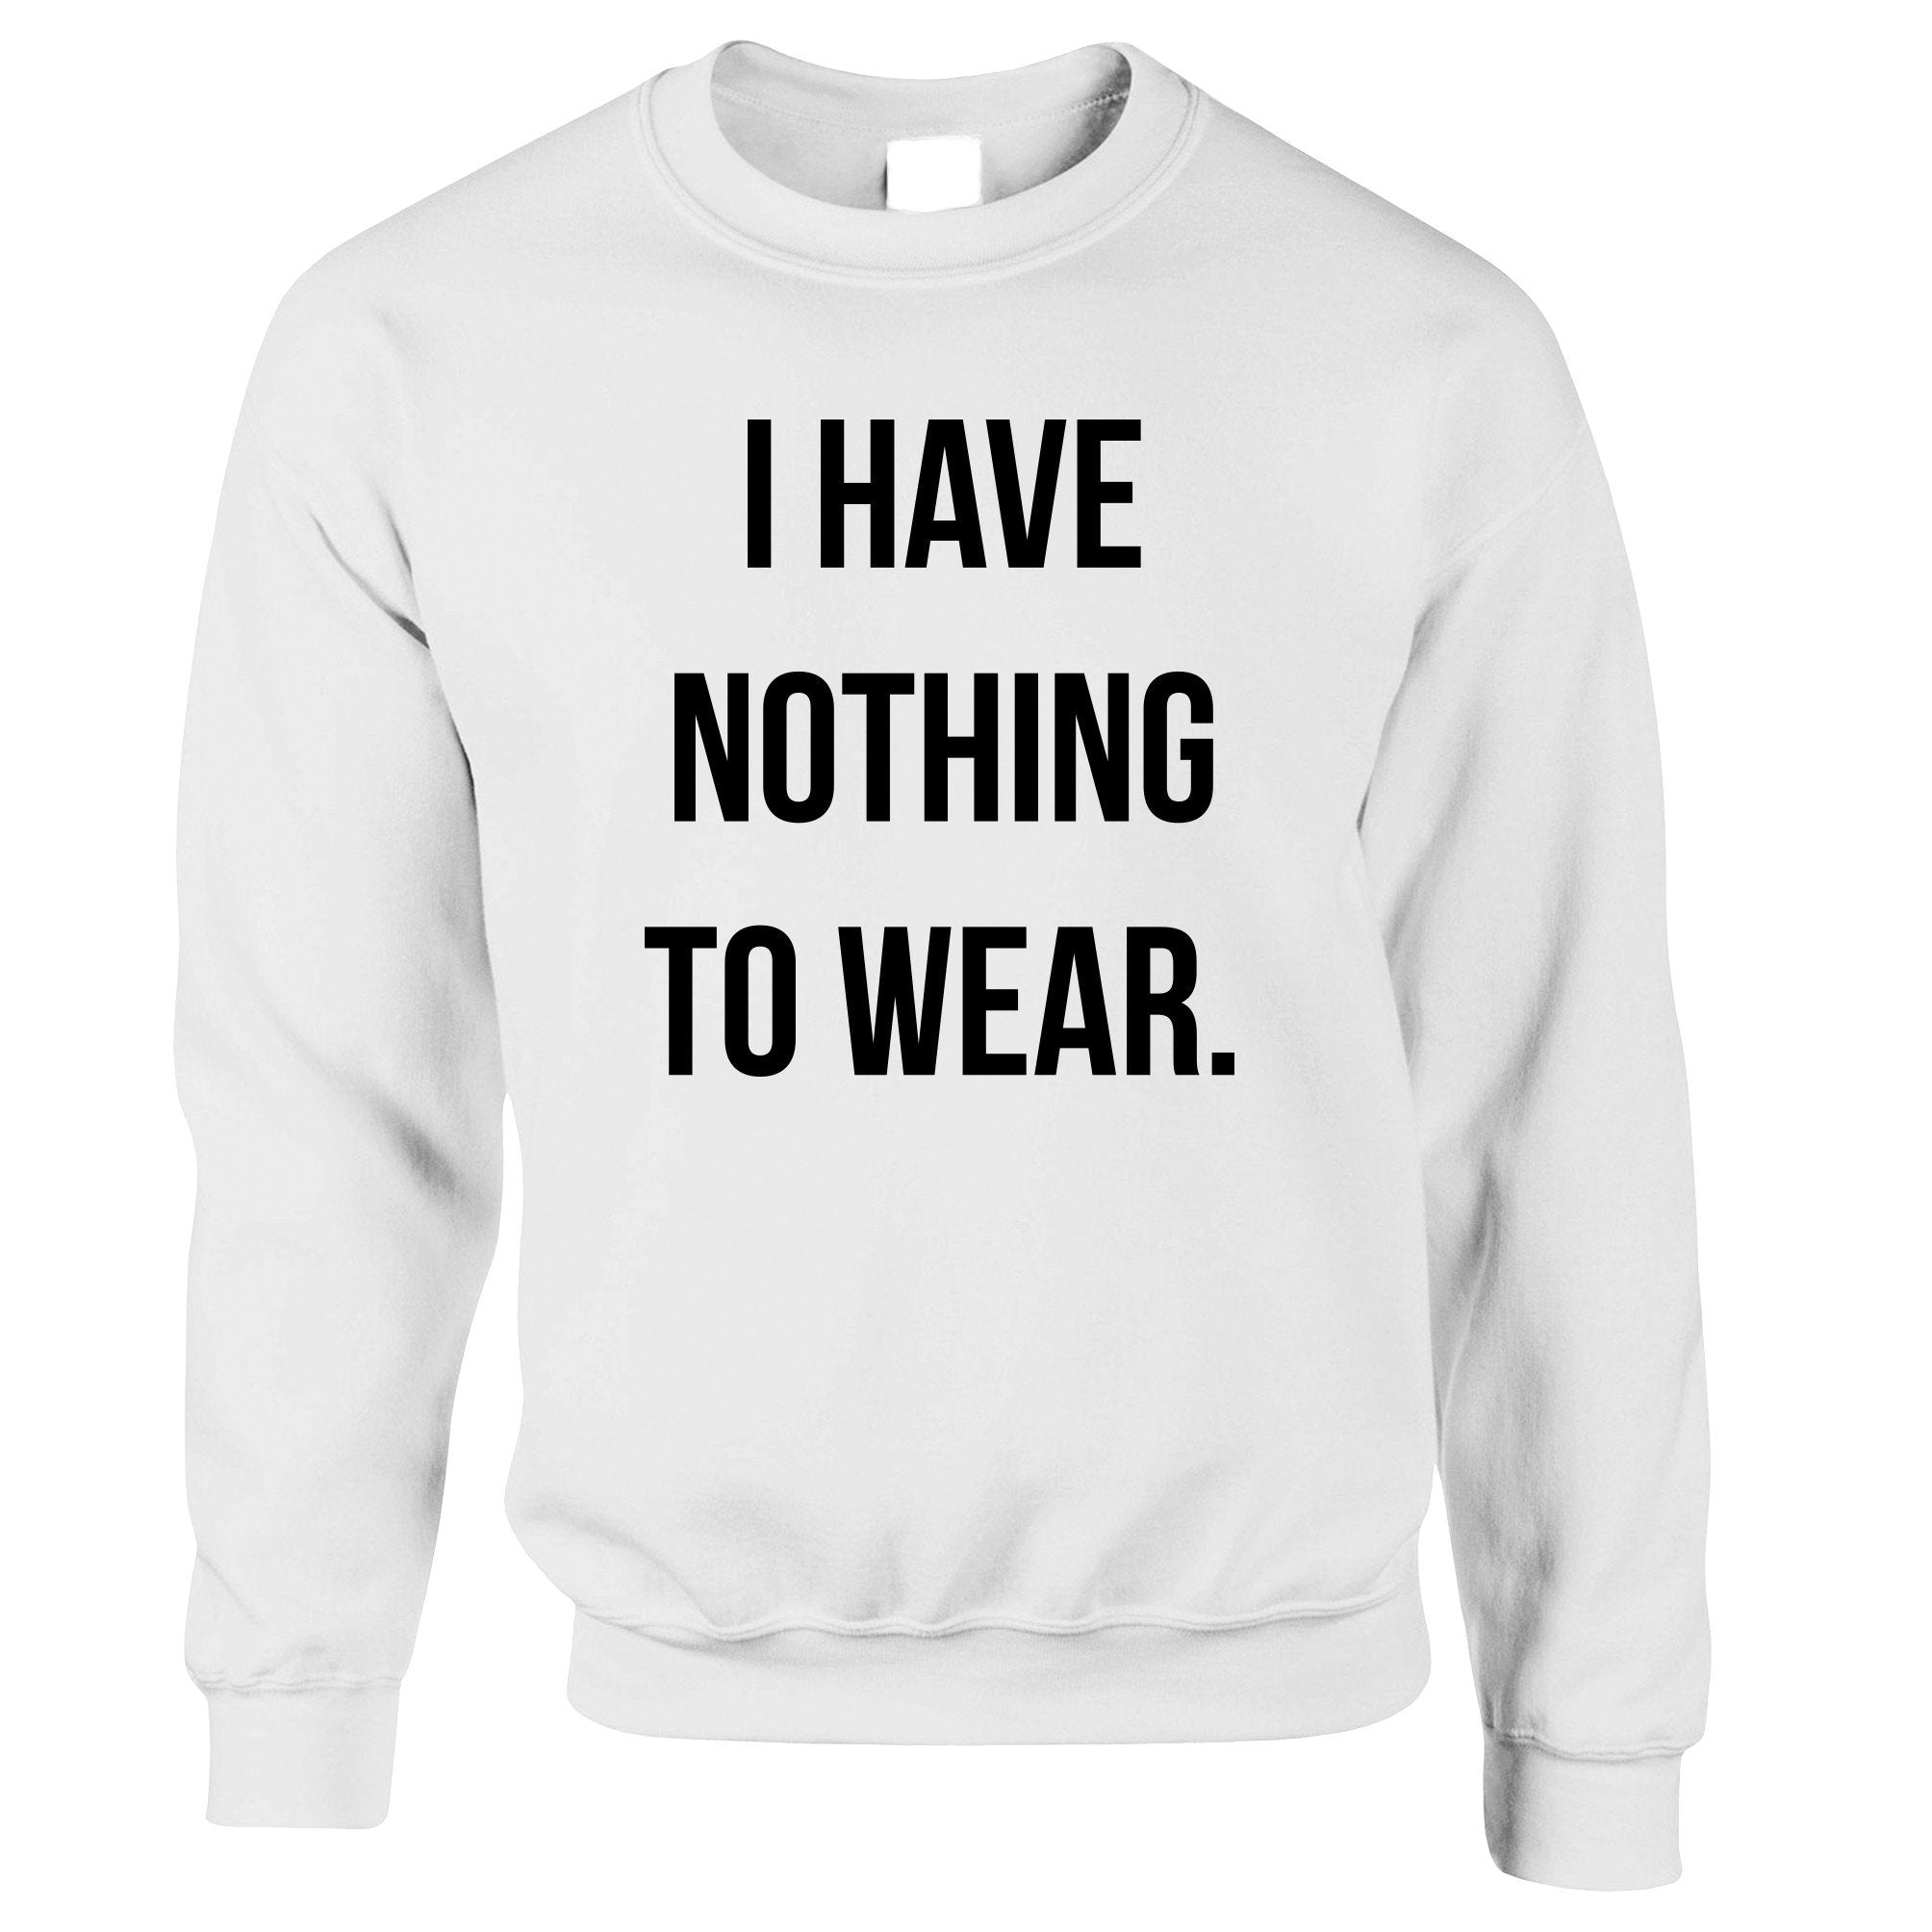 Novelty Slogan Jumper I Have Nothing To Wear. Sweatshirt Sweater